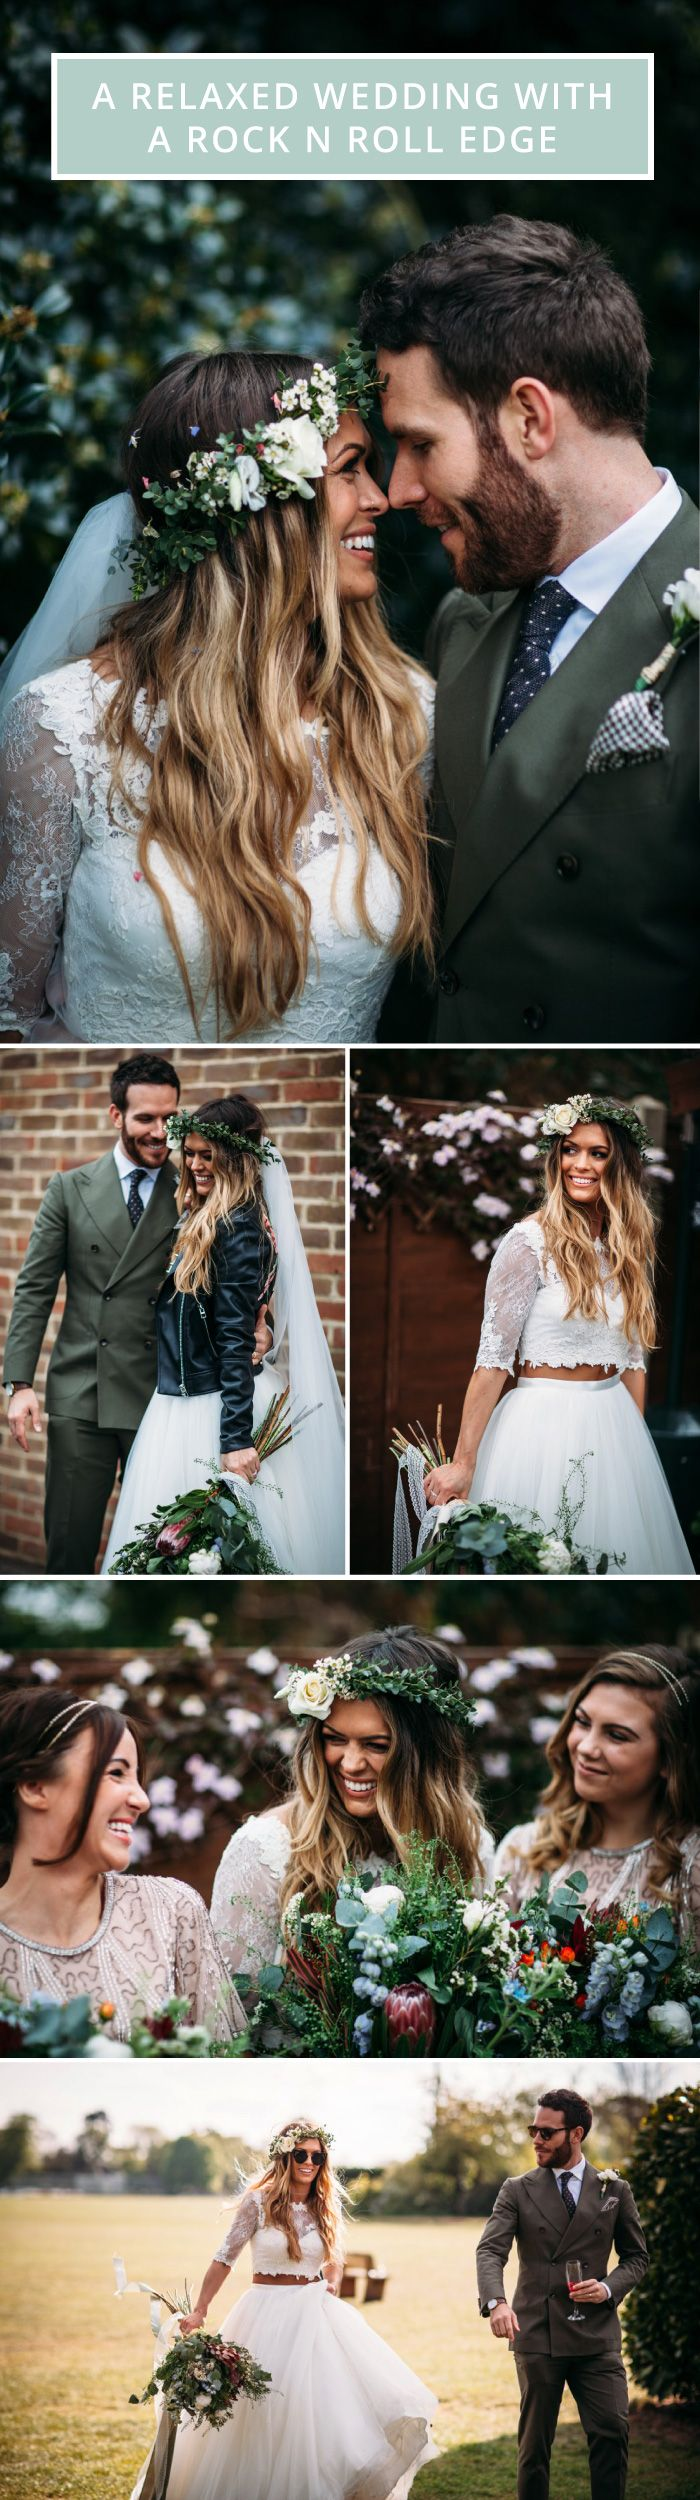 A laid back wedding without a theme | foliage bouquet | bride in a leather jacket | groom in tweed suit | bridal flower crown | rock n roll wedding | Ombre hair | Long bridal hair | Celebrity wedding | Take Me Out wedding